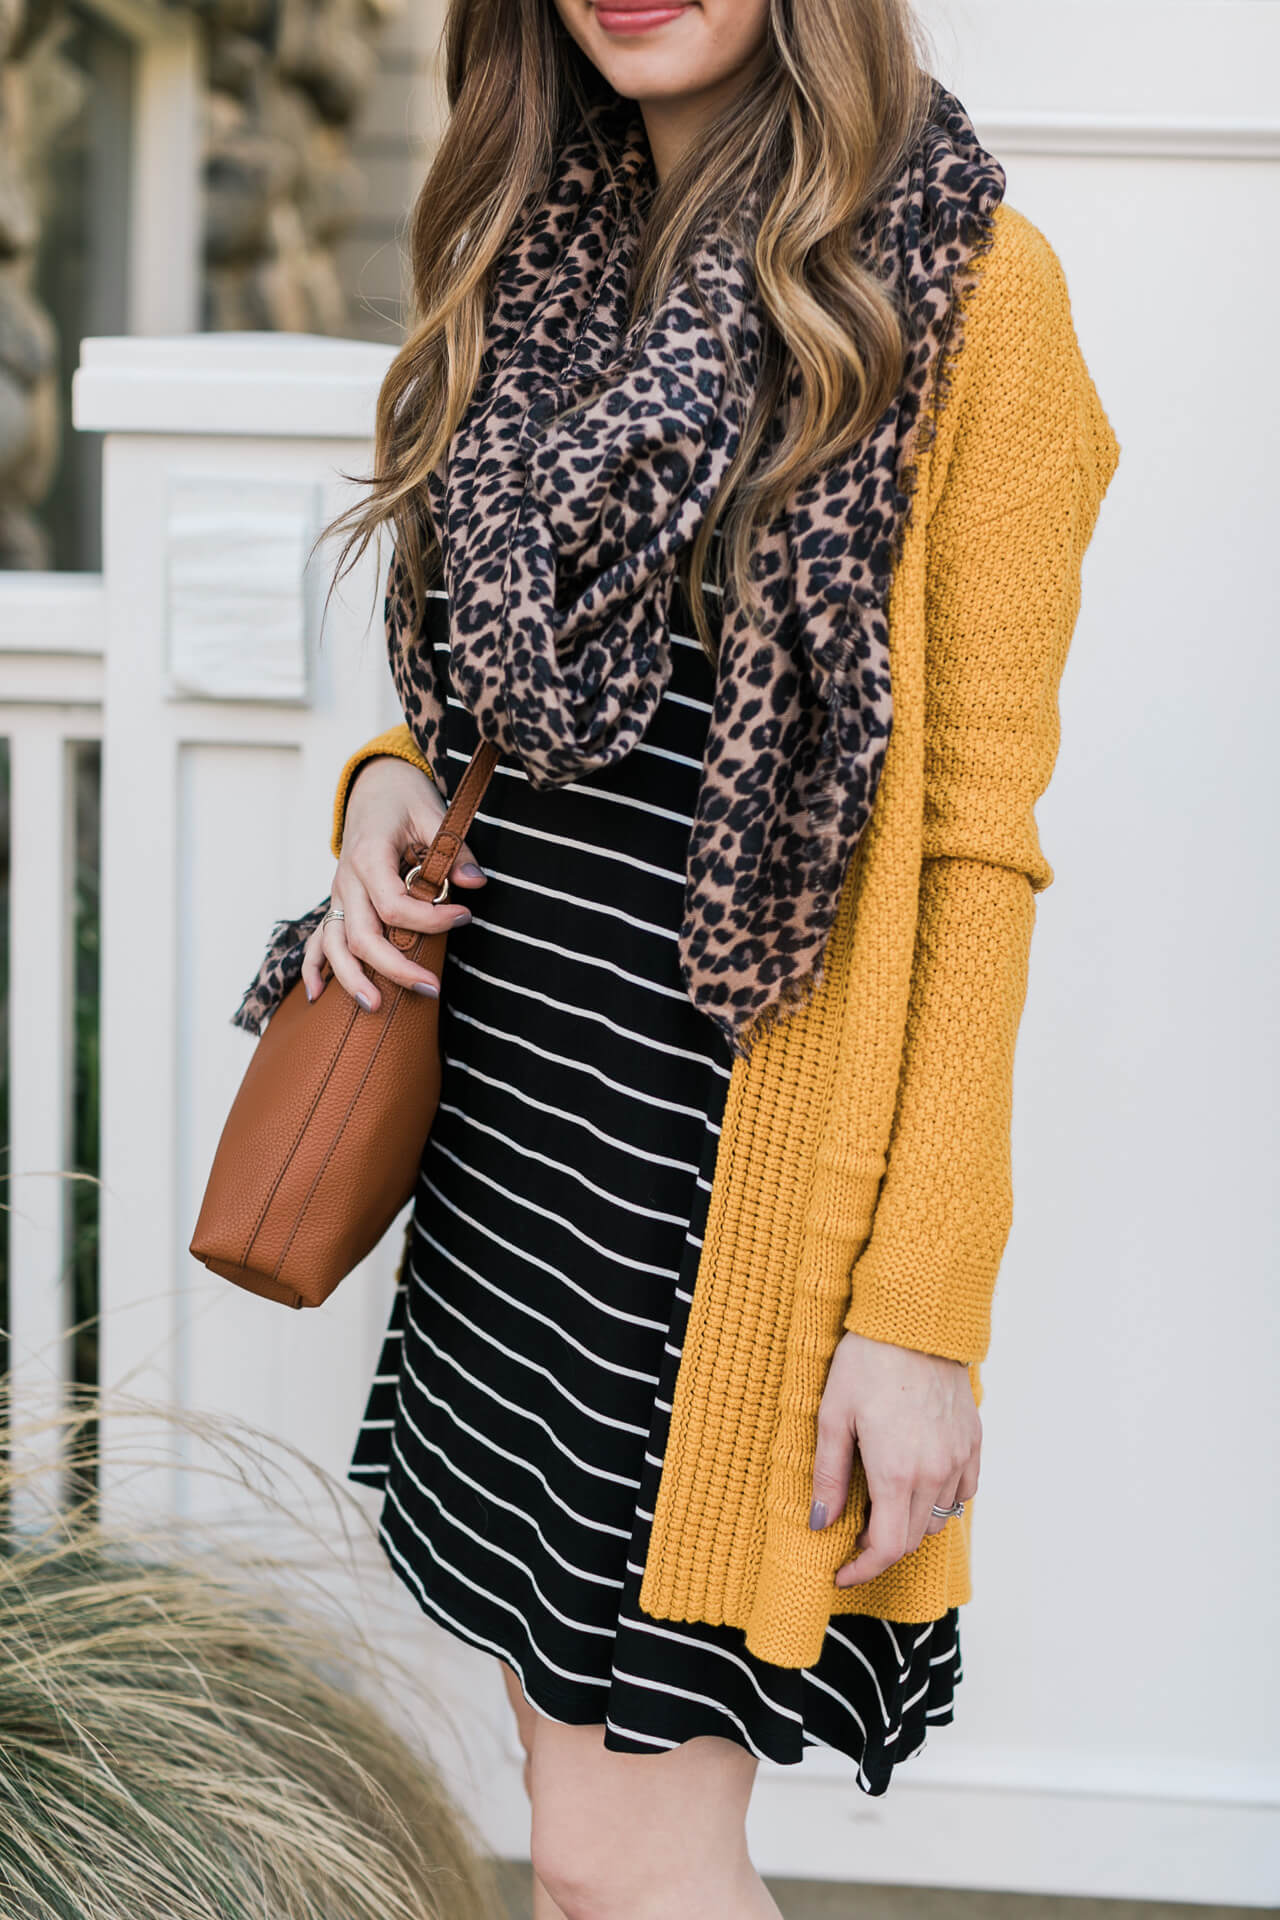 print mixing with stripes and leopard animal print